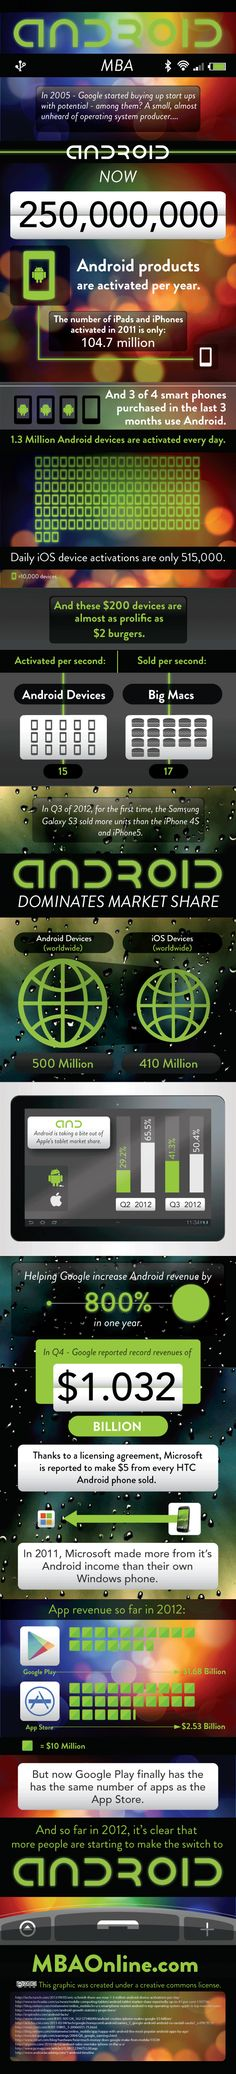 Infographic: The state of Android and its rise to smartphone domination - TechSpot